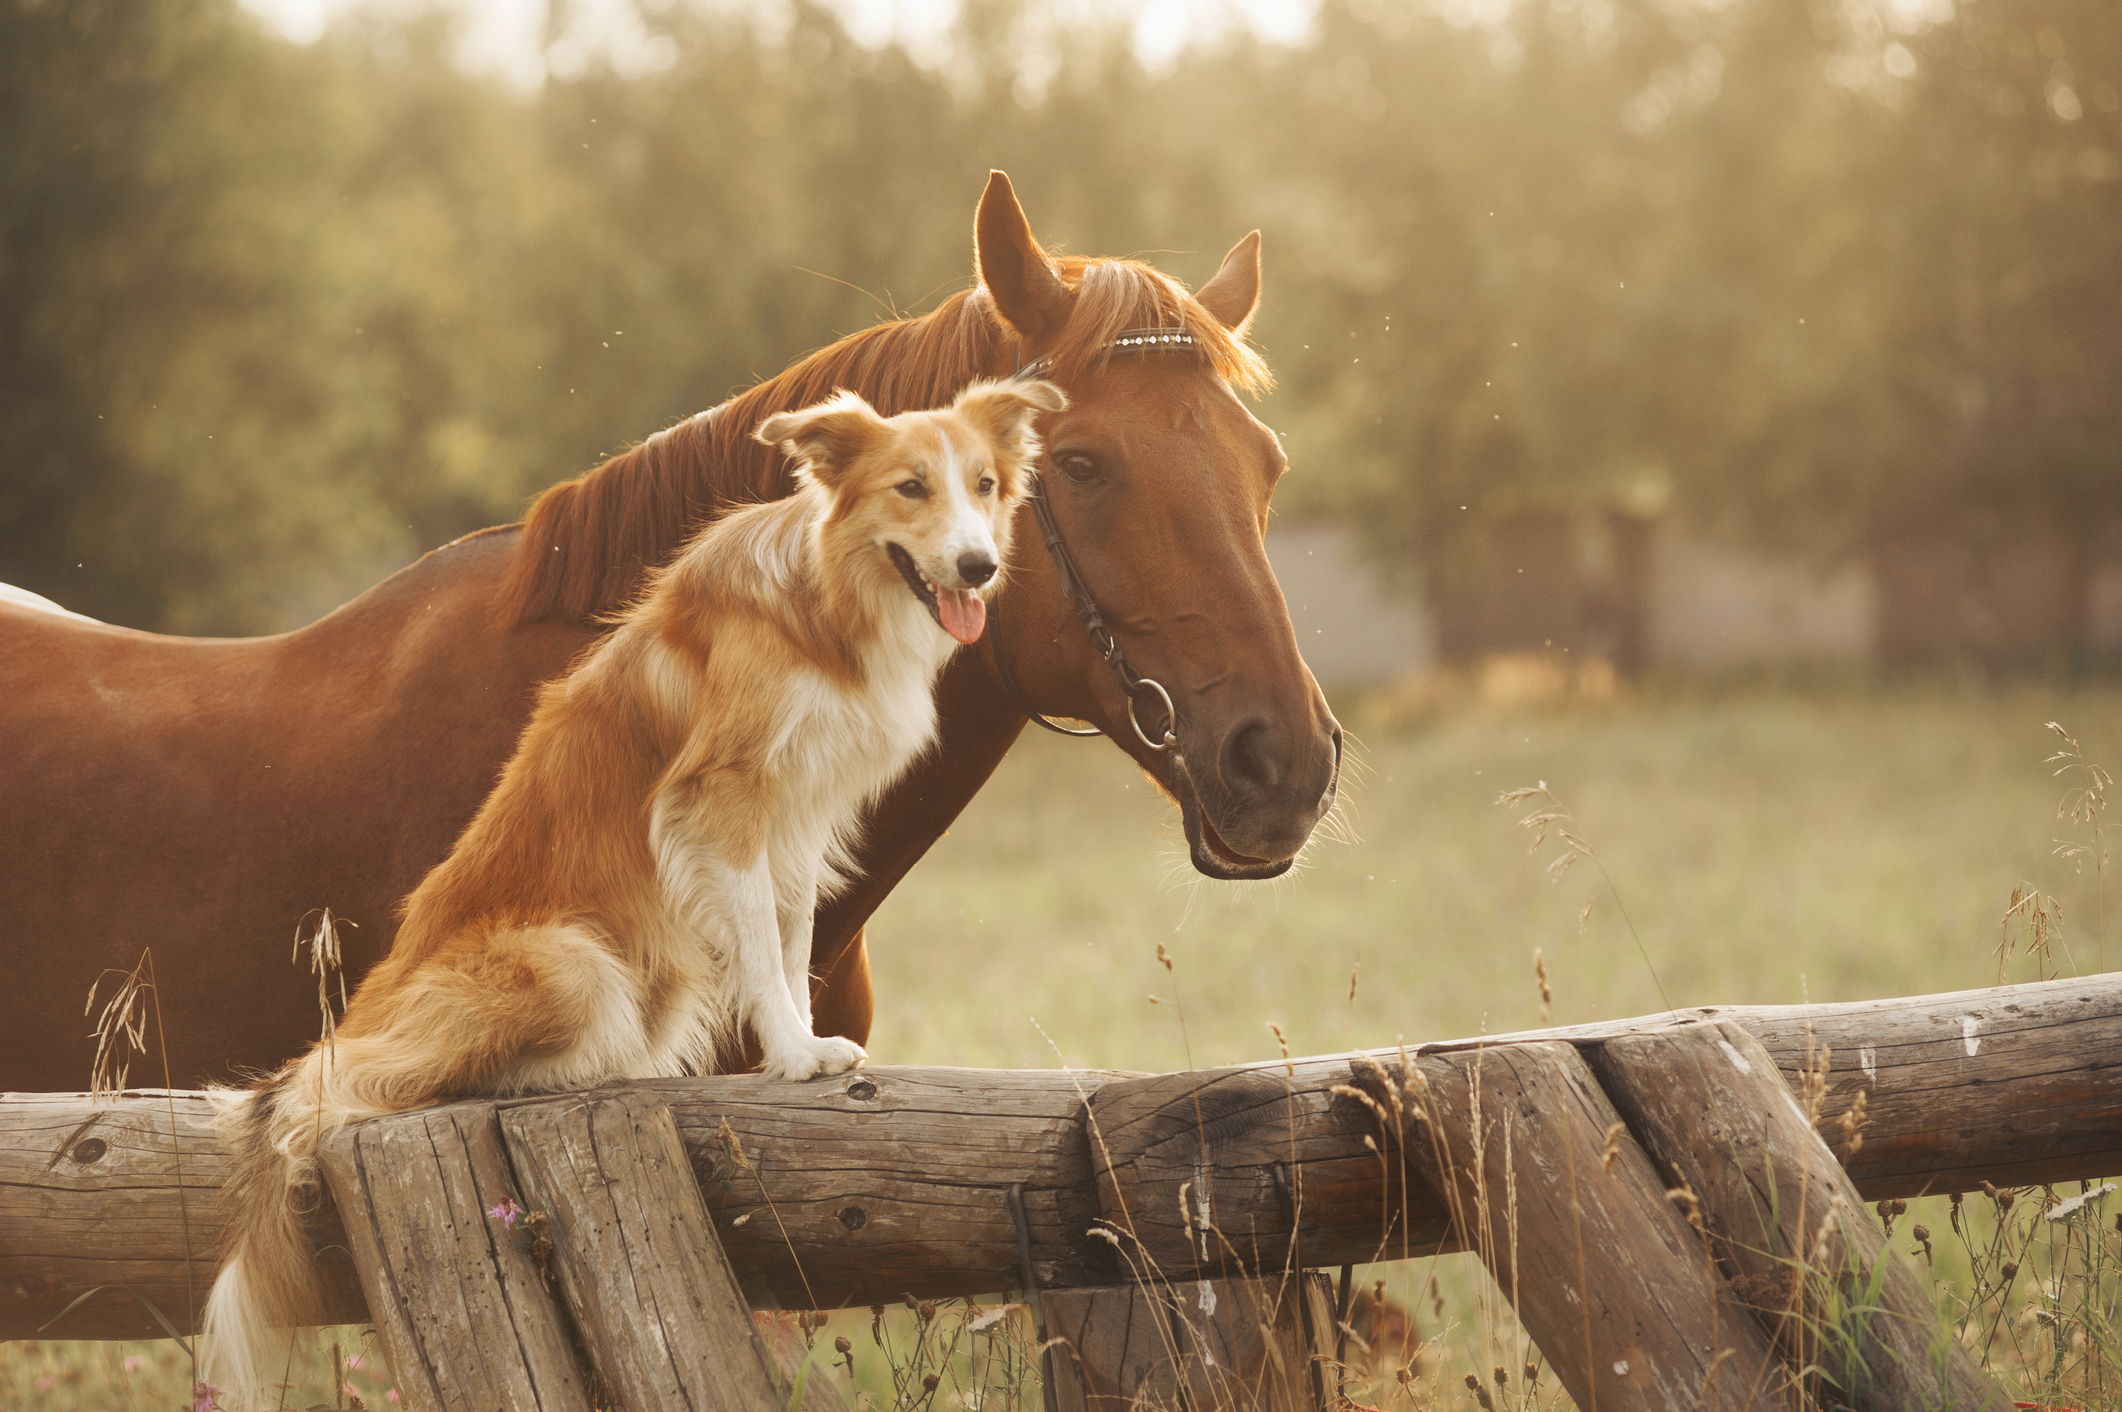 Horse and a dog relaxing near one another.